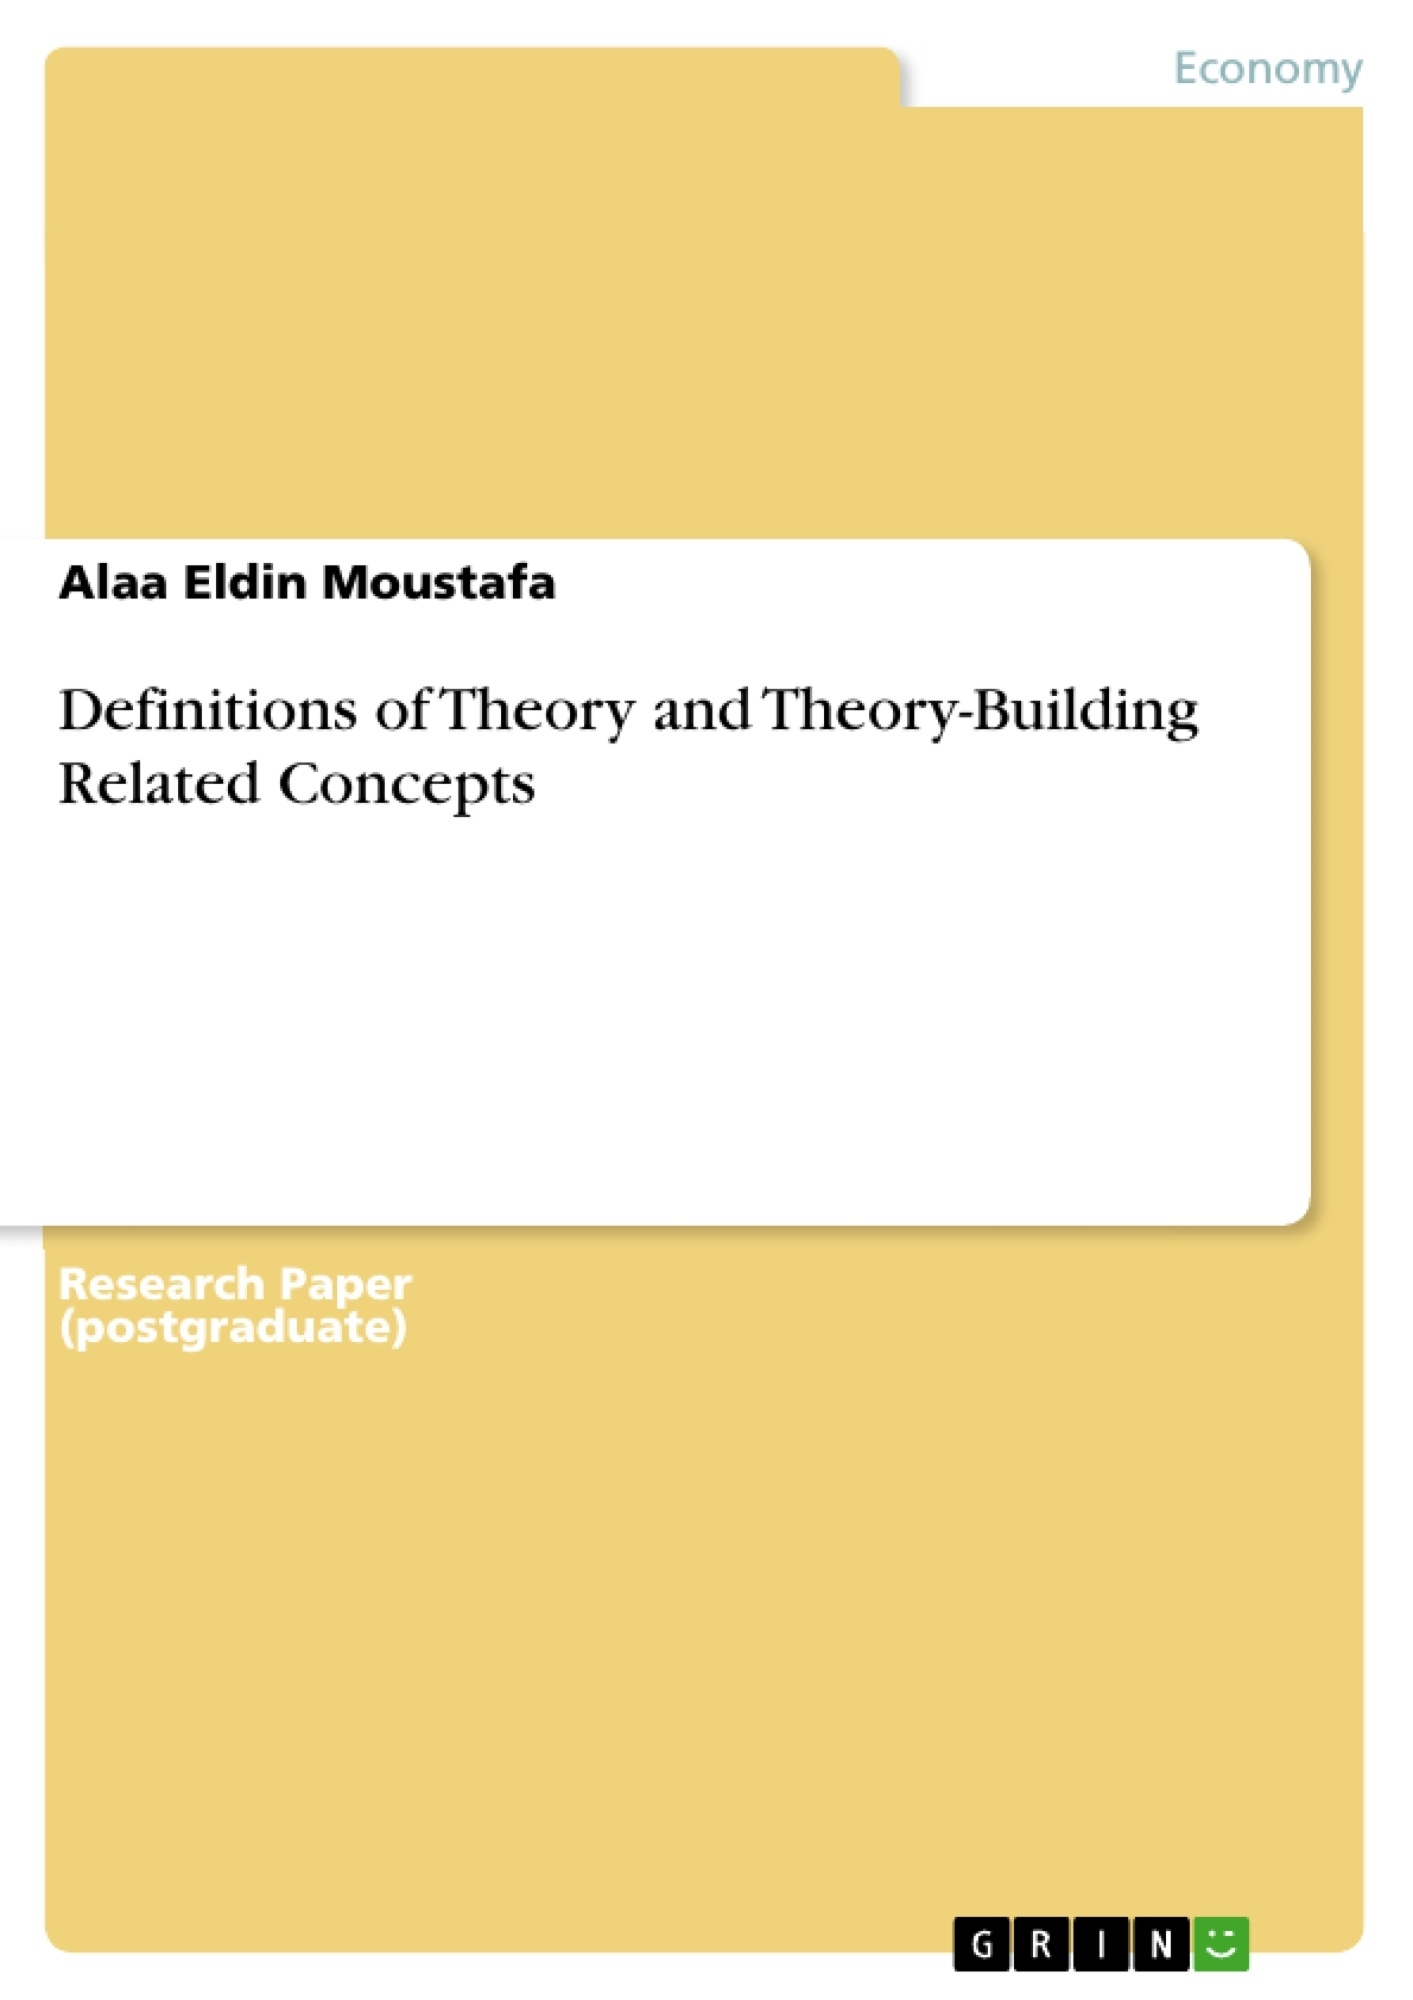 Title: Definitions of Theory and Theory-Building Related Concepts